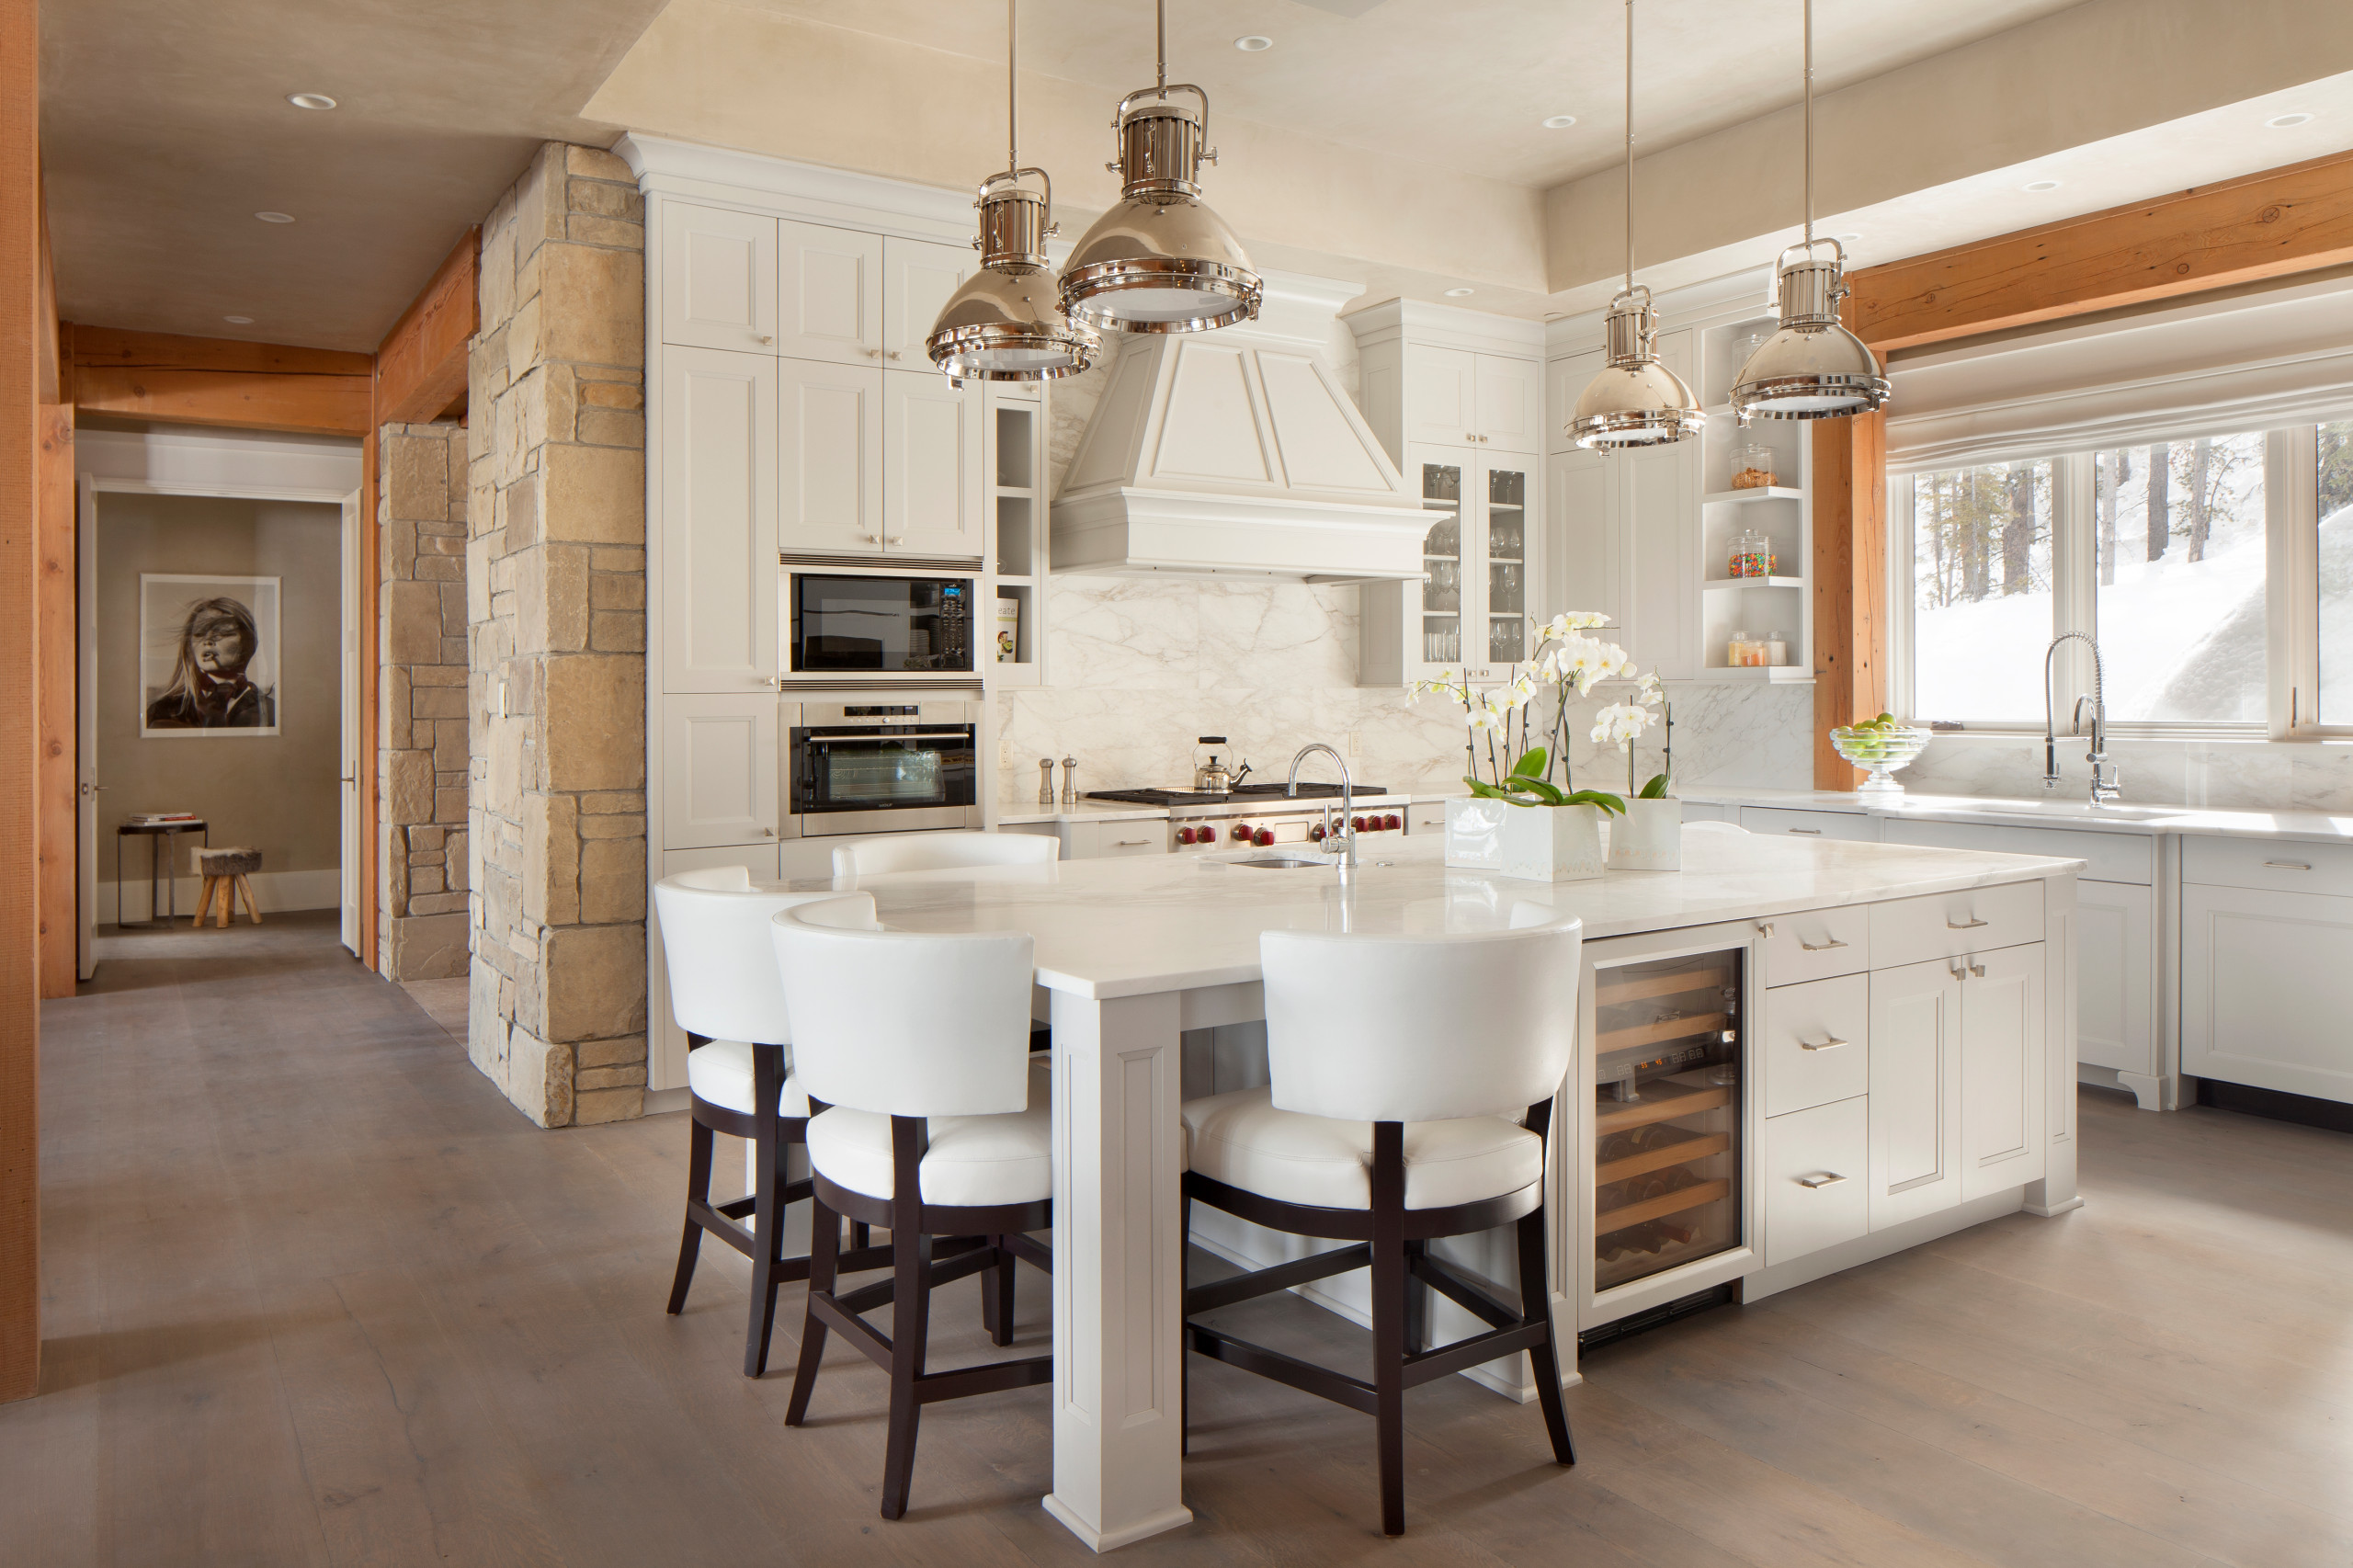 75 Beautiful Rustic Kitchen With An Island Pictures Ideas December 2020 Houzz